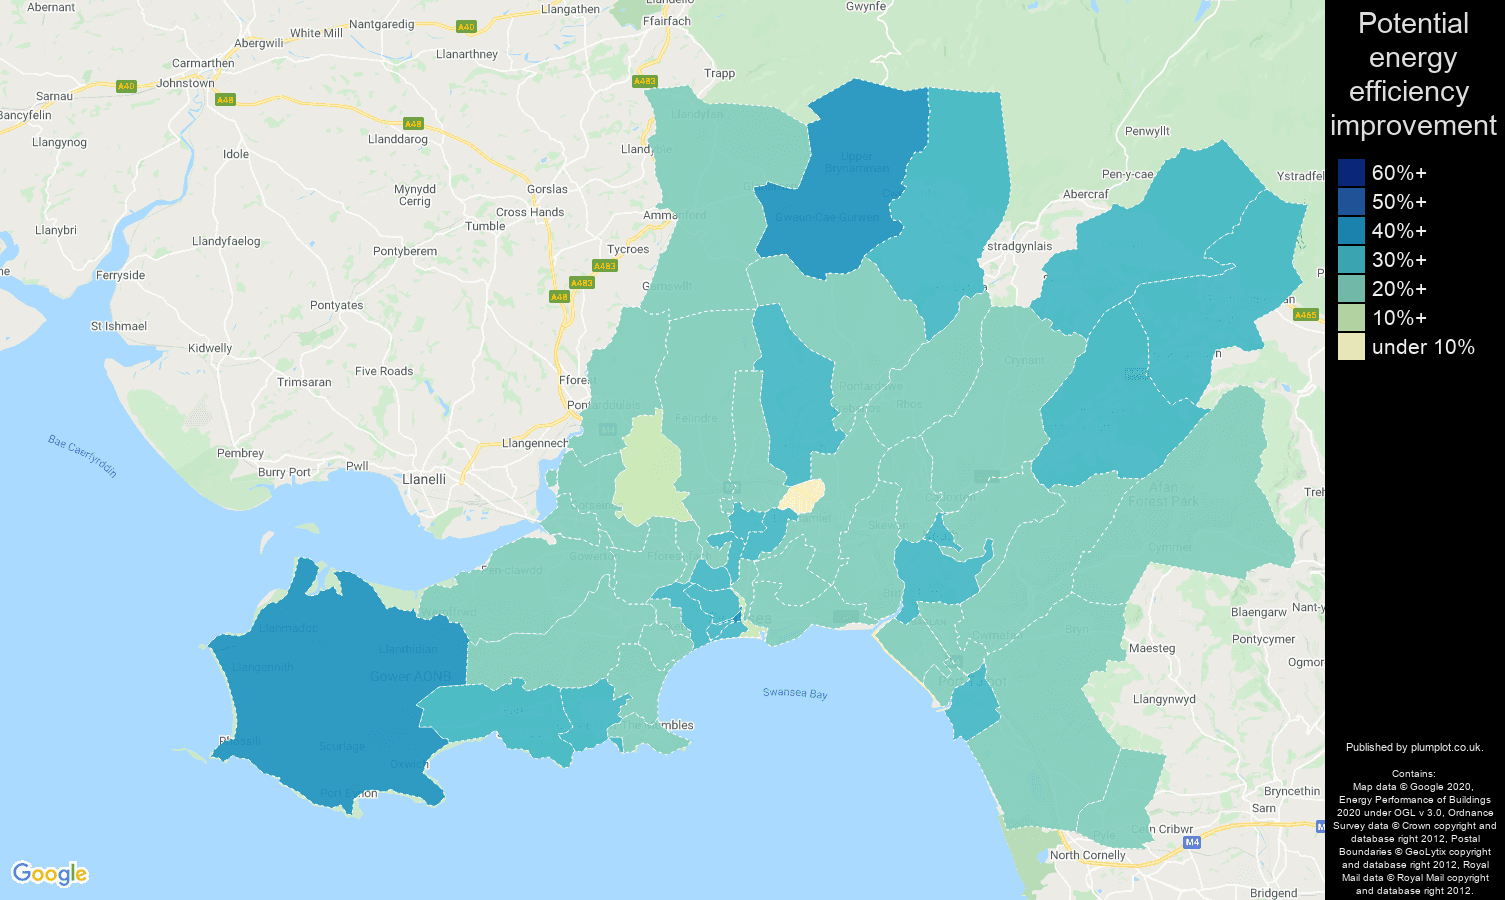 West Glamorgan map of potential energy efficiency improvement of houses